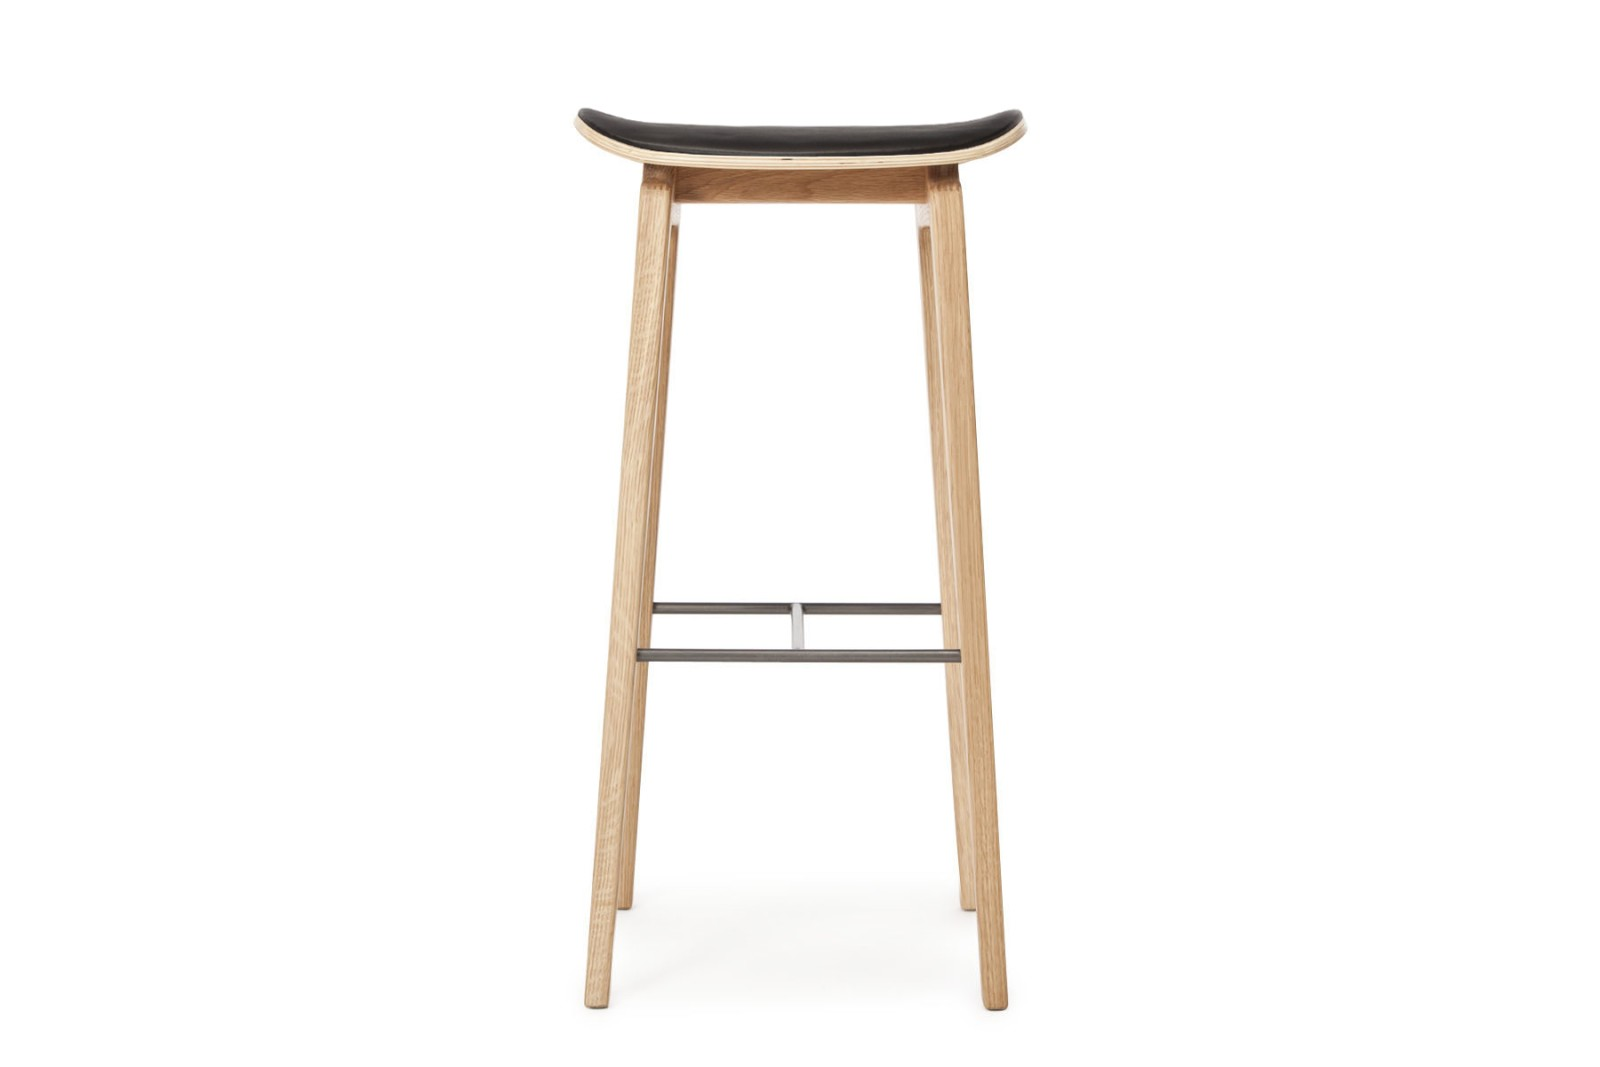 NY11 Bar Chair, Leather Natural, High